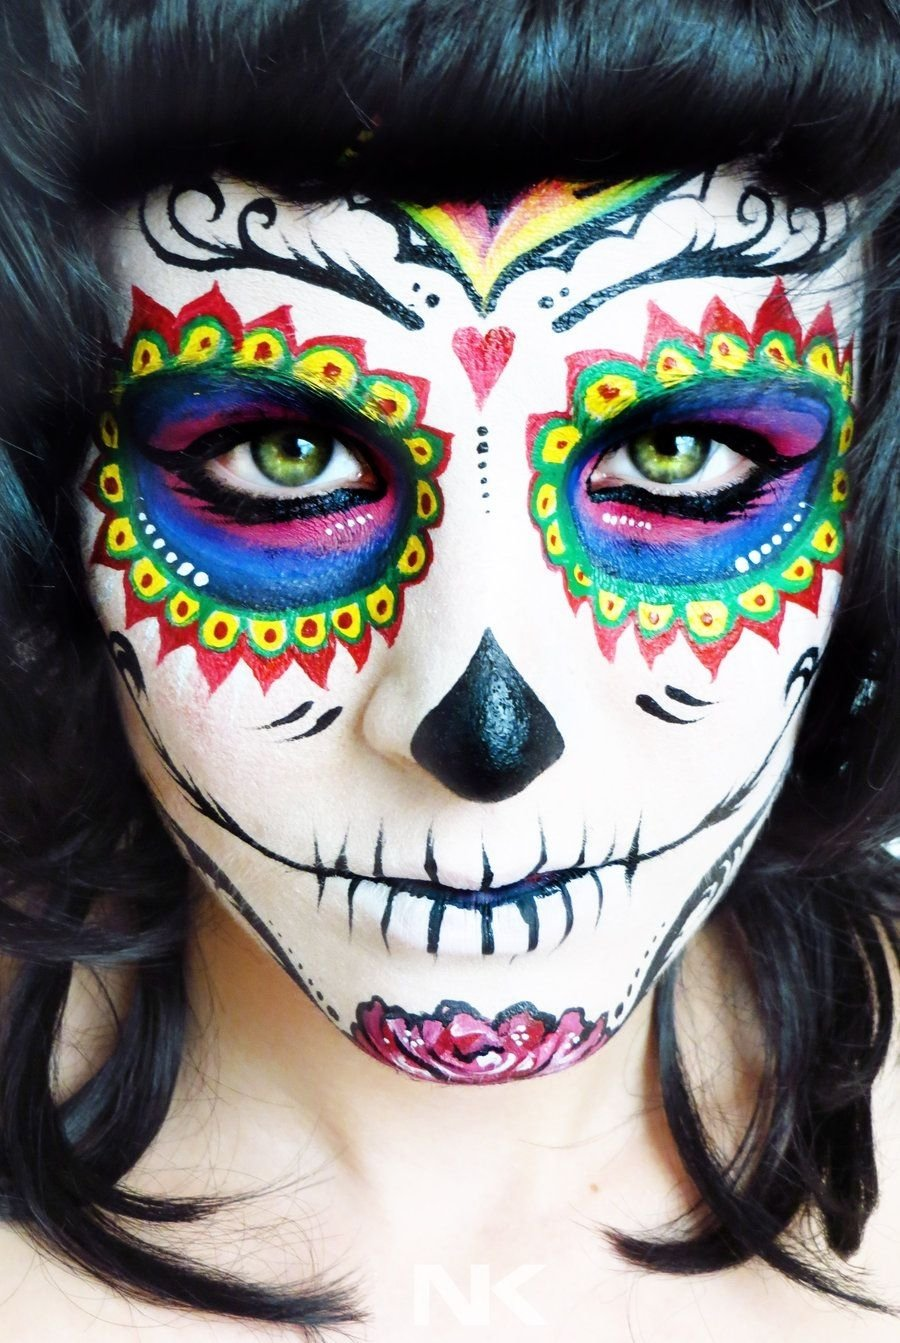 10 Best Face Painting For Halloween Ideas 41 beautiful colorful sugar skull halloween makeup ideas sugar 2020